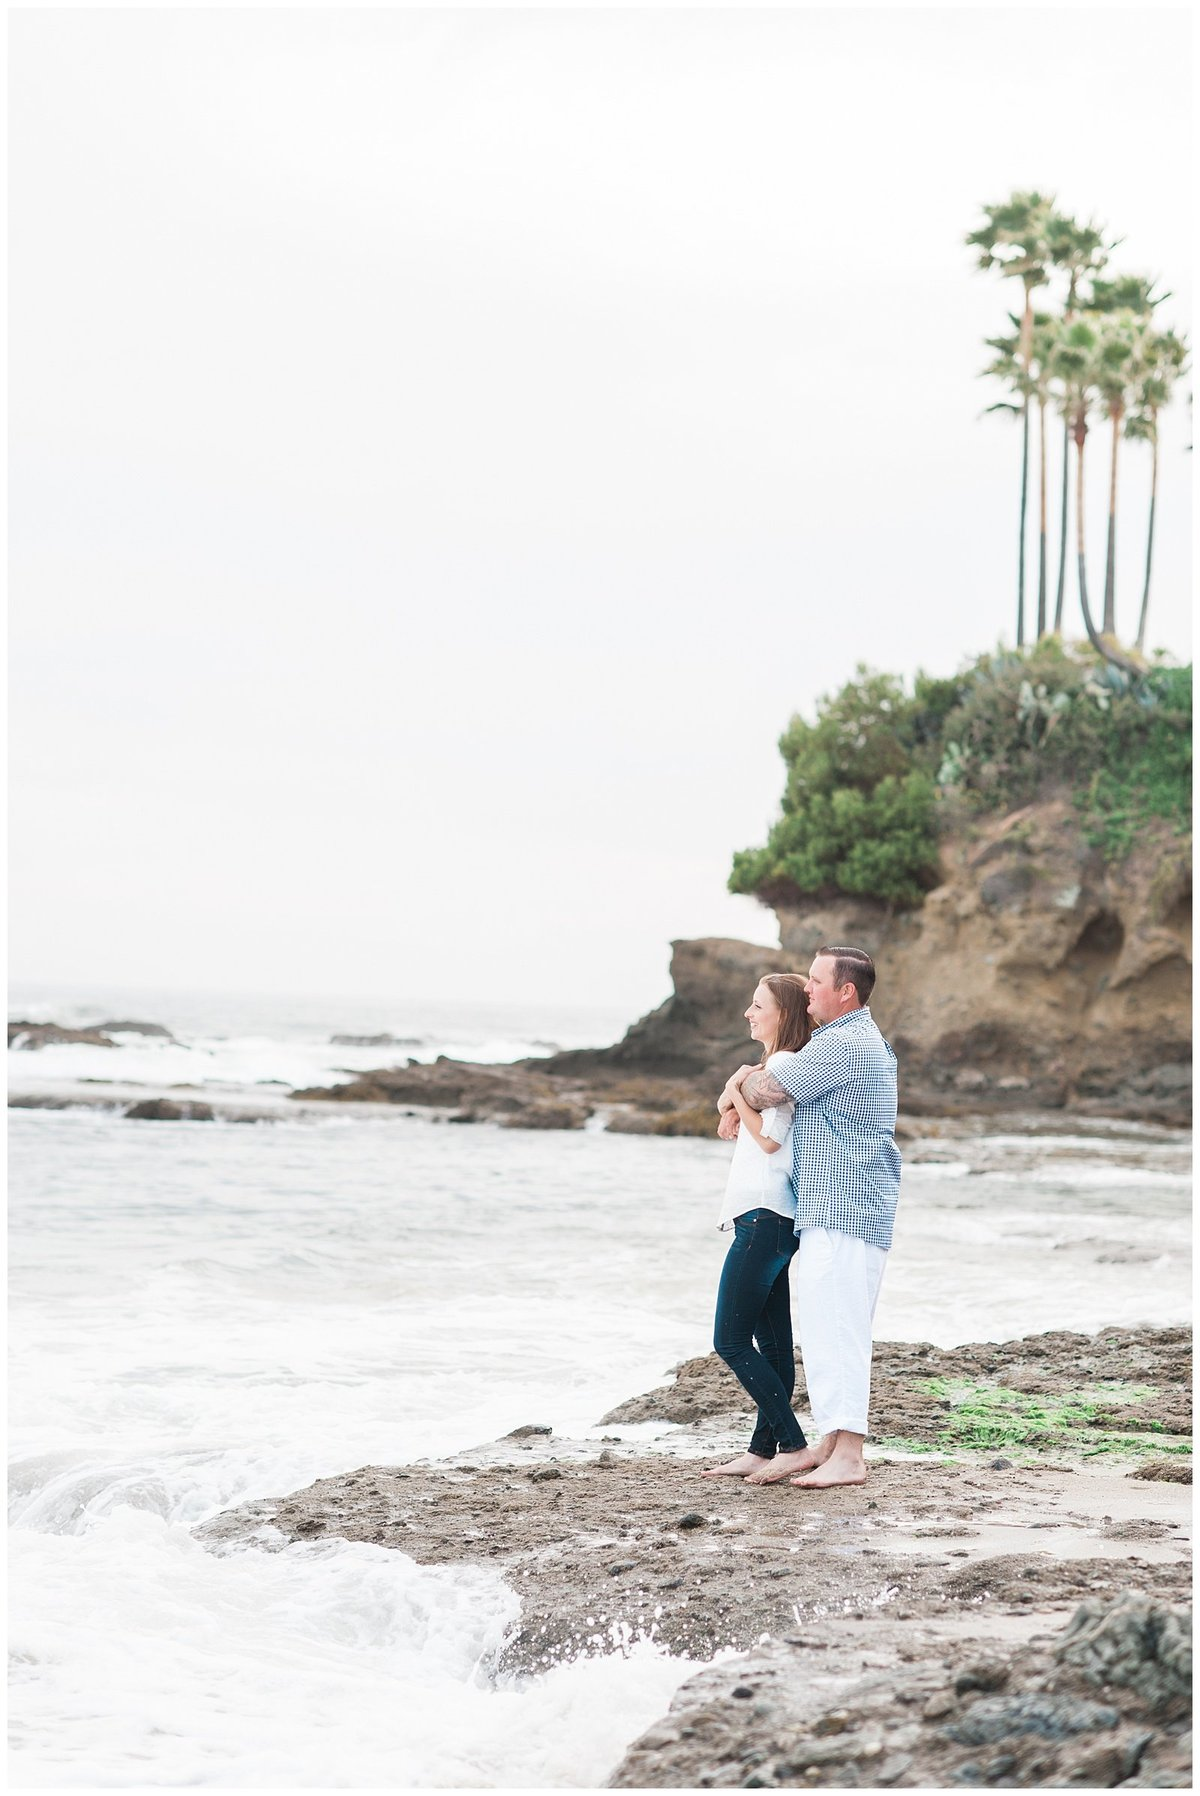 Laguna beach canyon engagement photographer wedding photo019